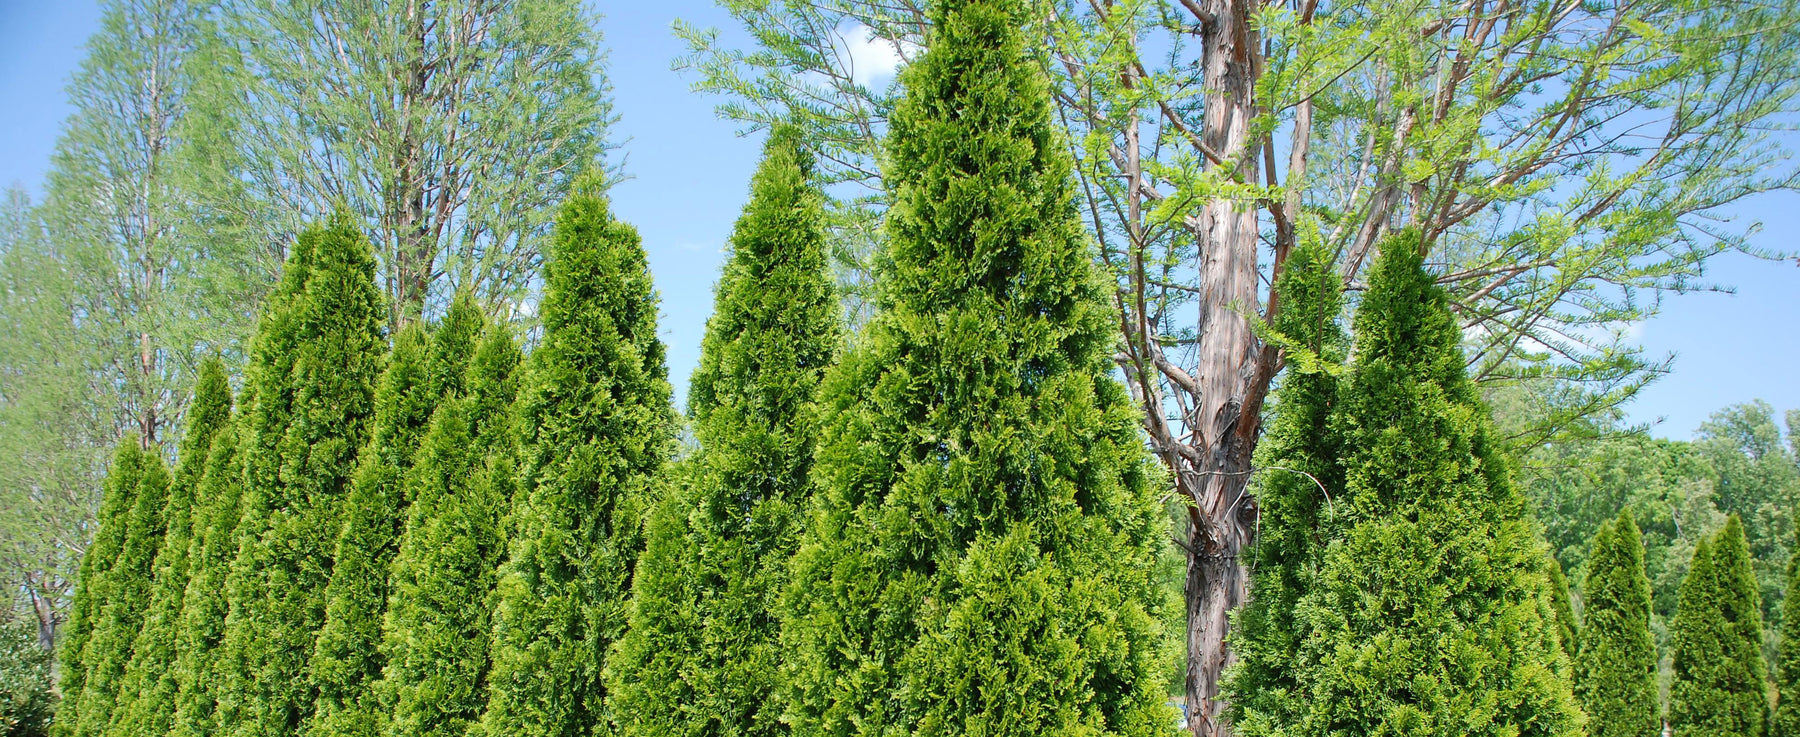 Thuja Green Giant Trees for Privacy